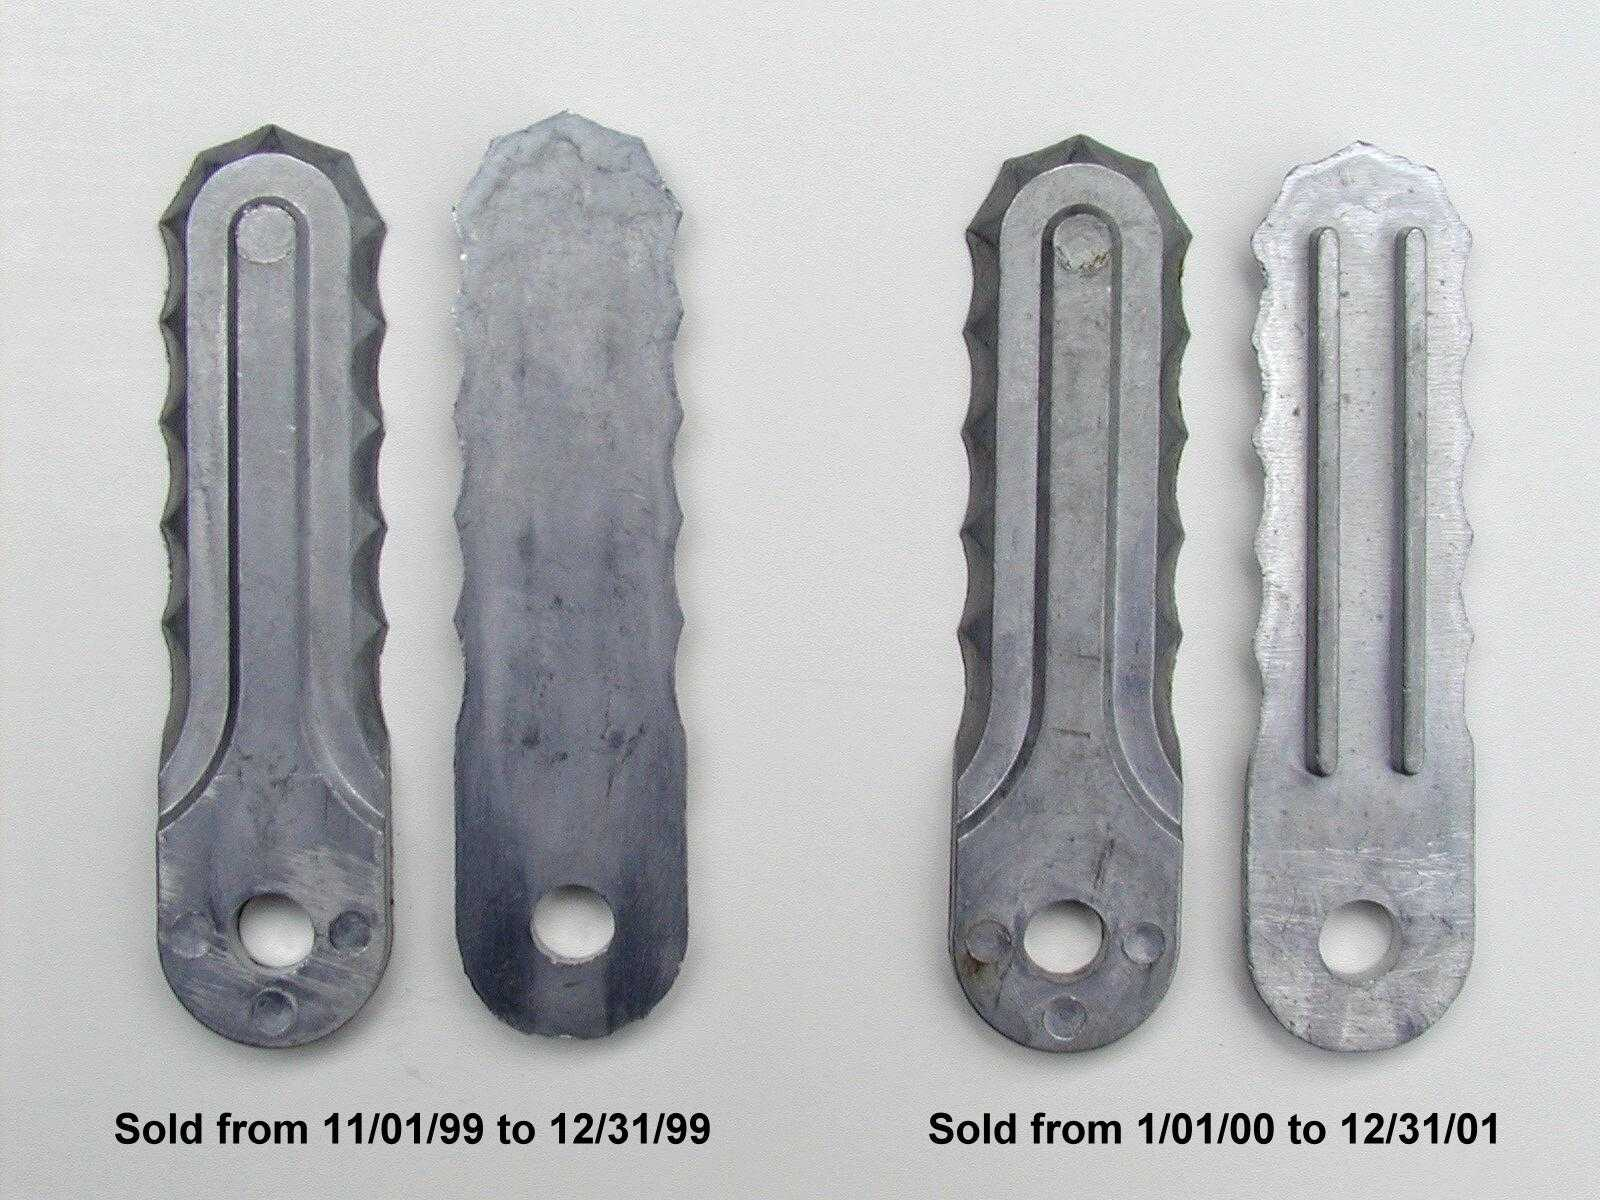 Picture of Recalled Weed Cutting Attachment Blades